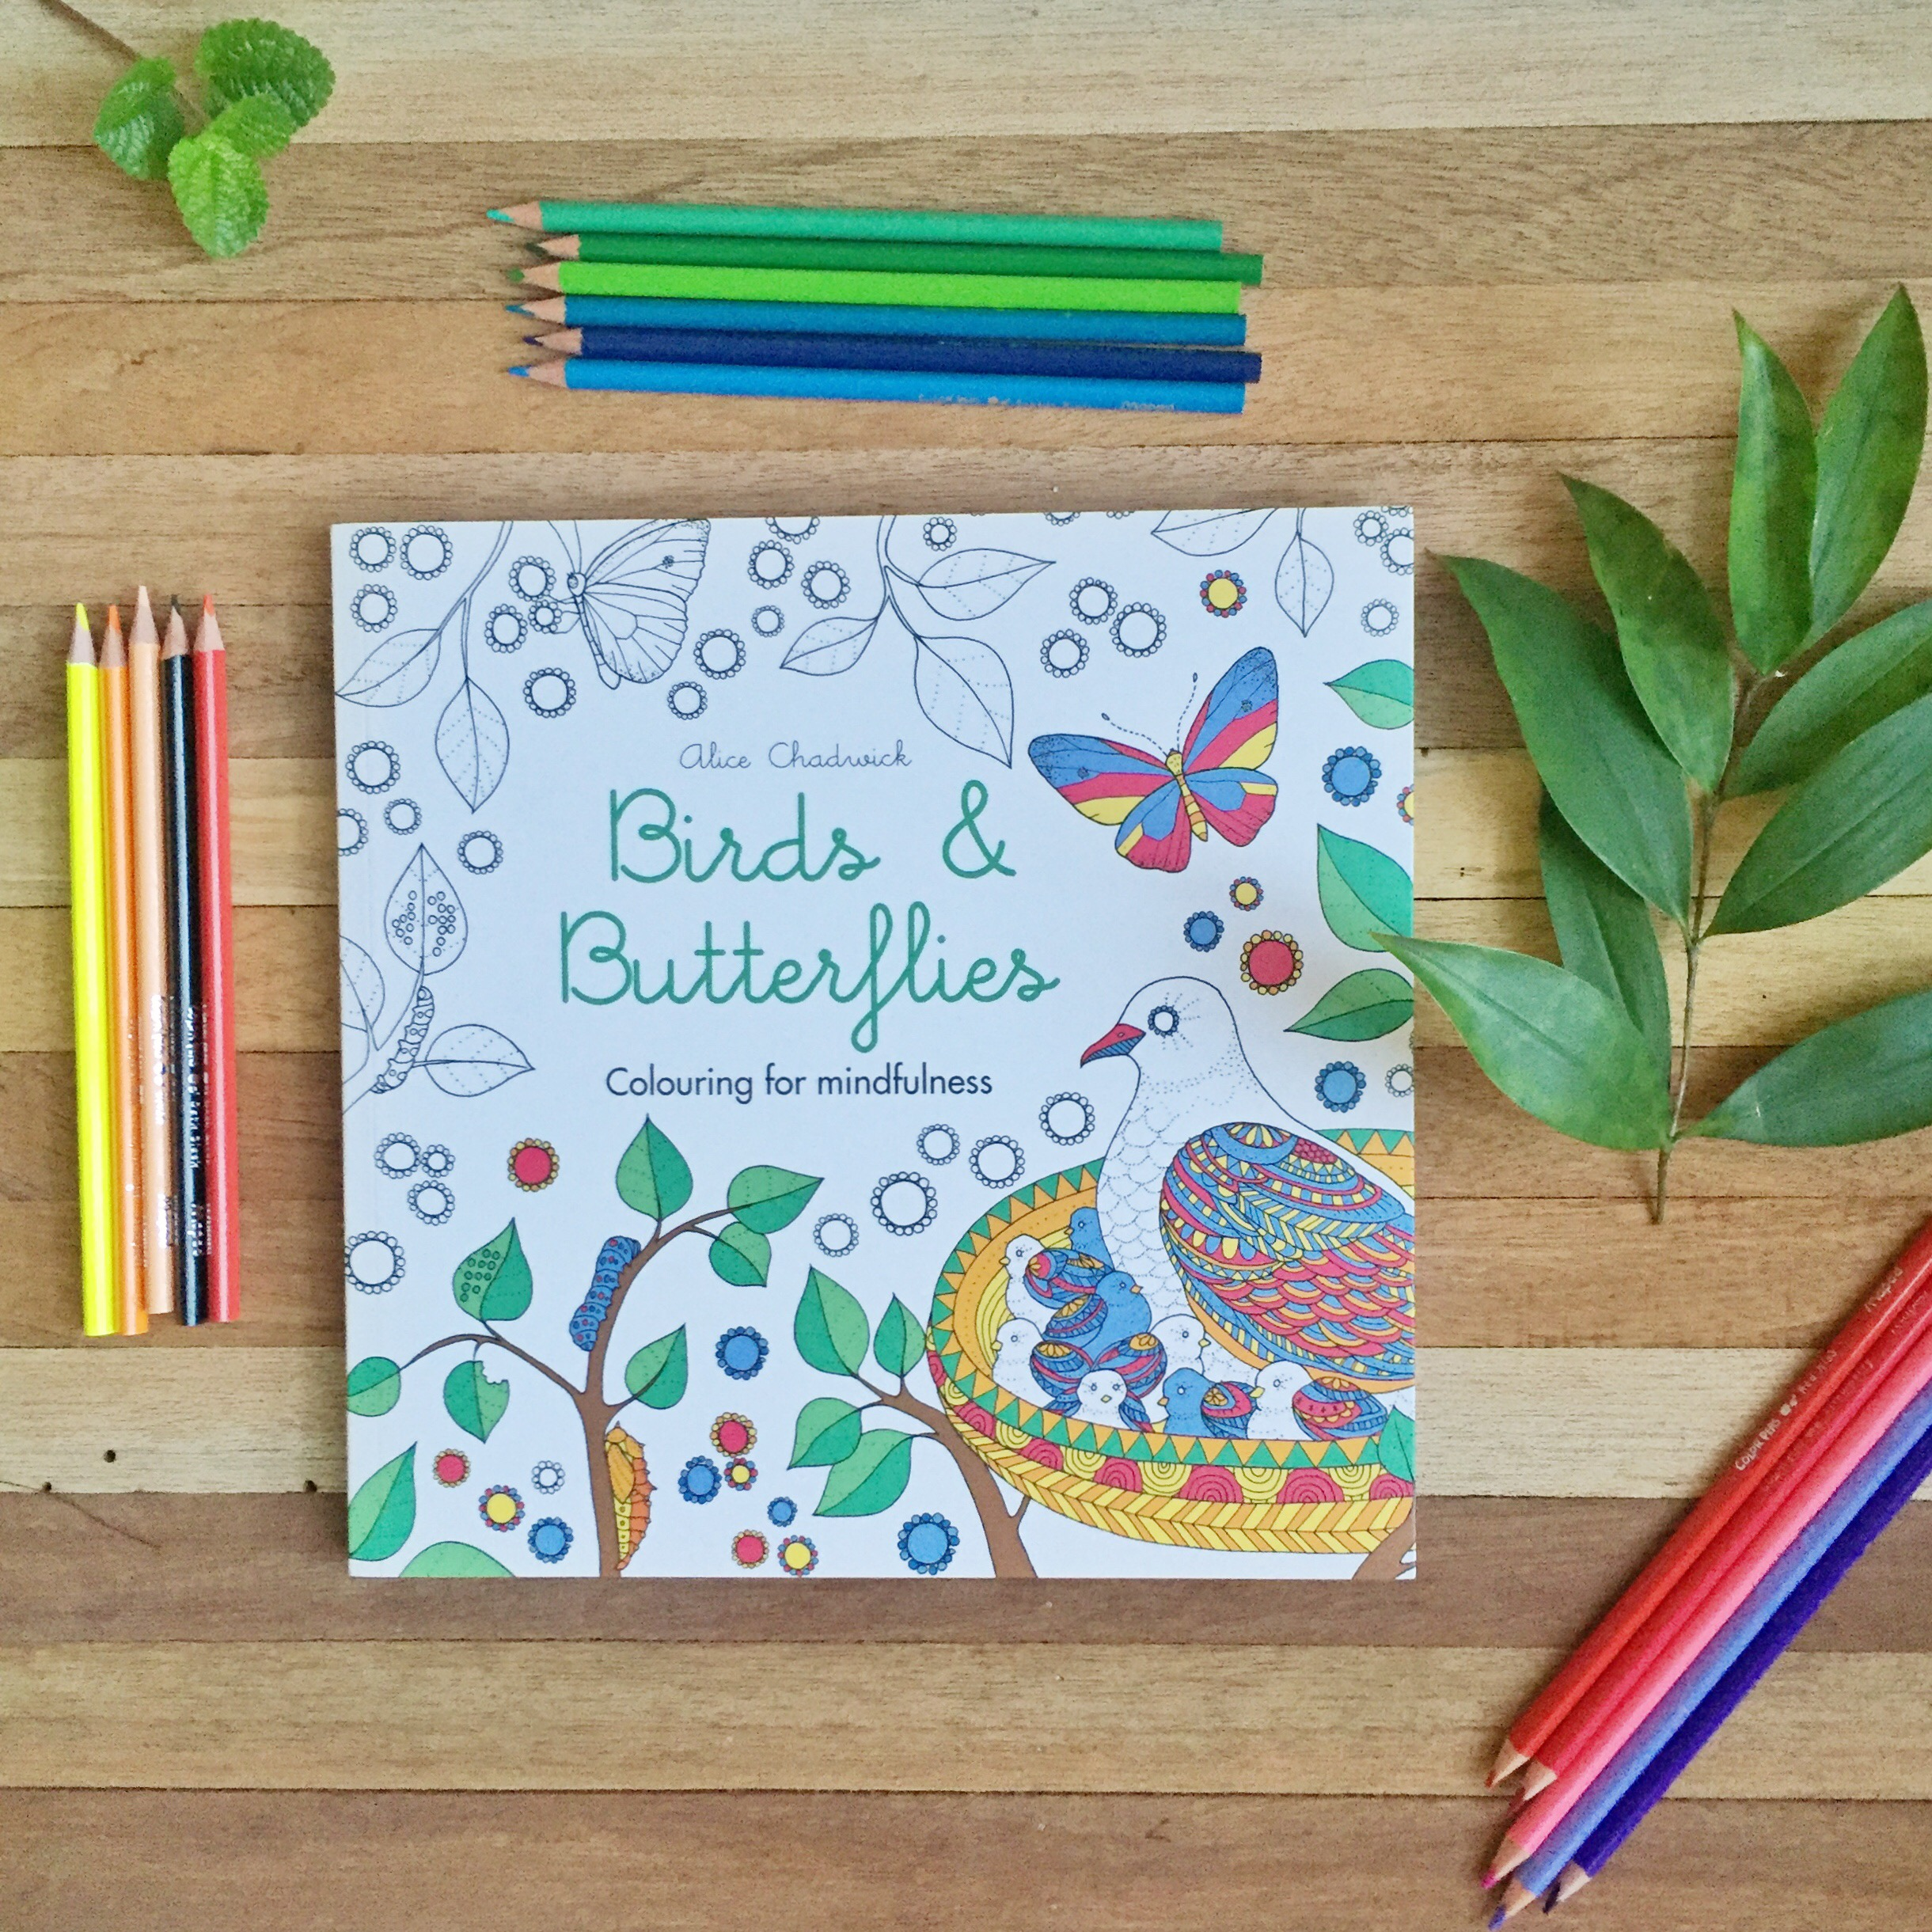 Prizes Include A 10 Pc Coloring Book Set Materials Fully Booked GCs And 2016 PlannerBecause At Is The Gift That Keeps